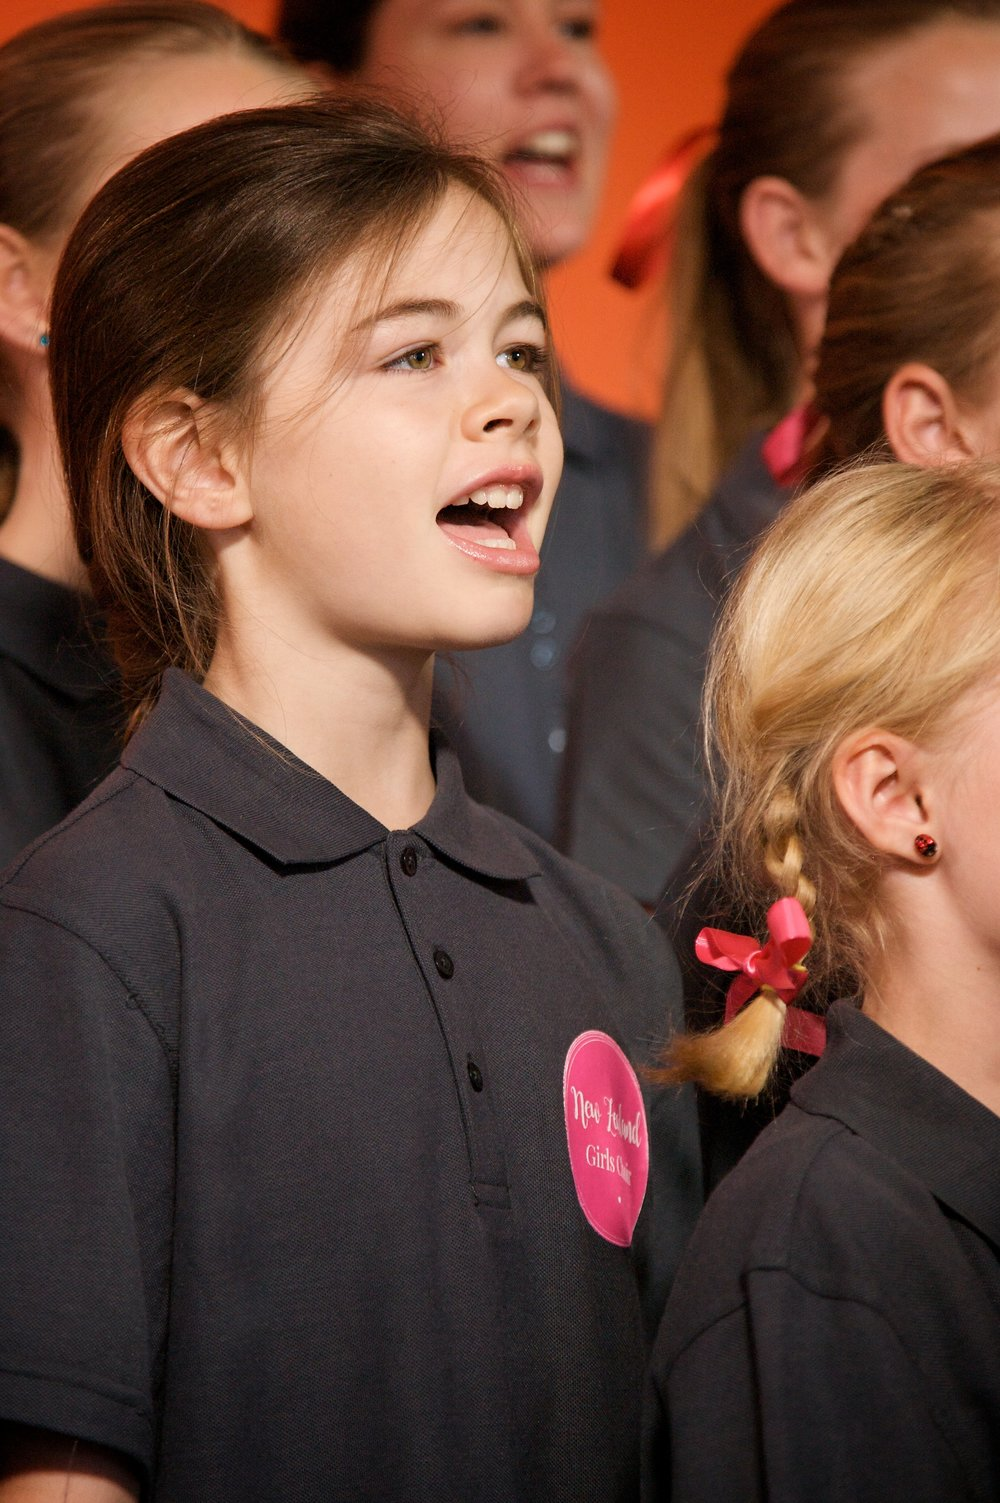 Girls Choir Auckland